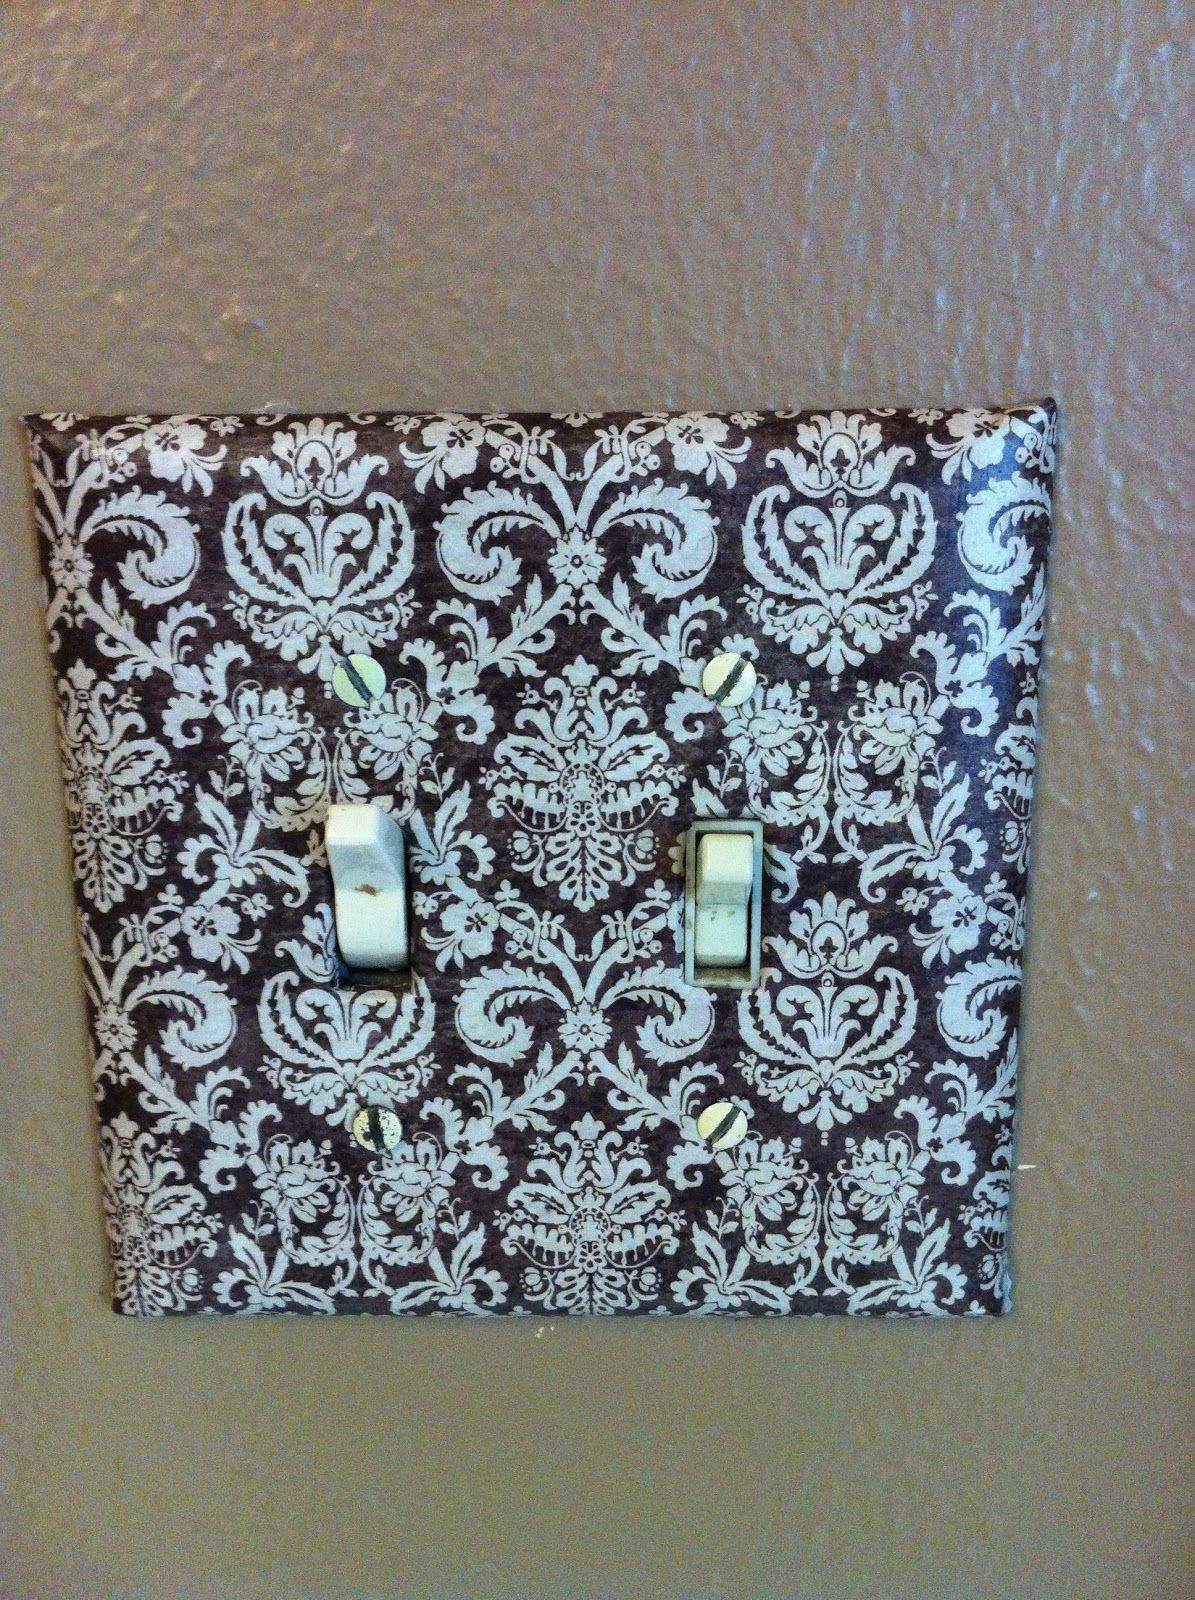 Mod Podge Light Switch Lightswitch Covers Diy Home Diy Home Décor